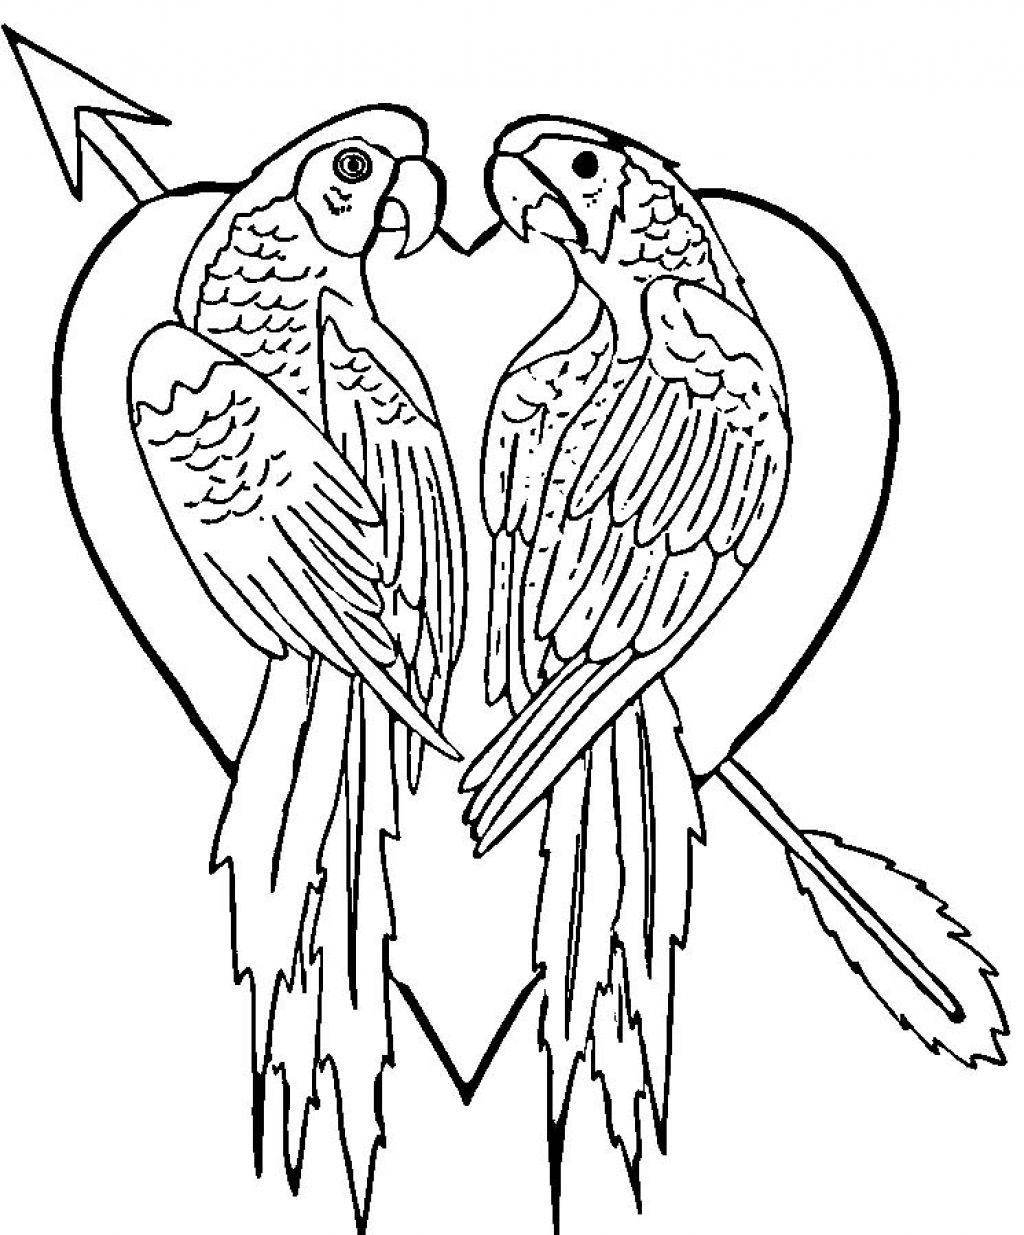 Free Printable Parrot Coloring Pages For Kids Love Coloring Pages Kids Printable Coloring Pages Bird Coloring Pages